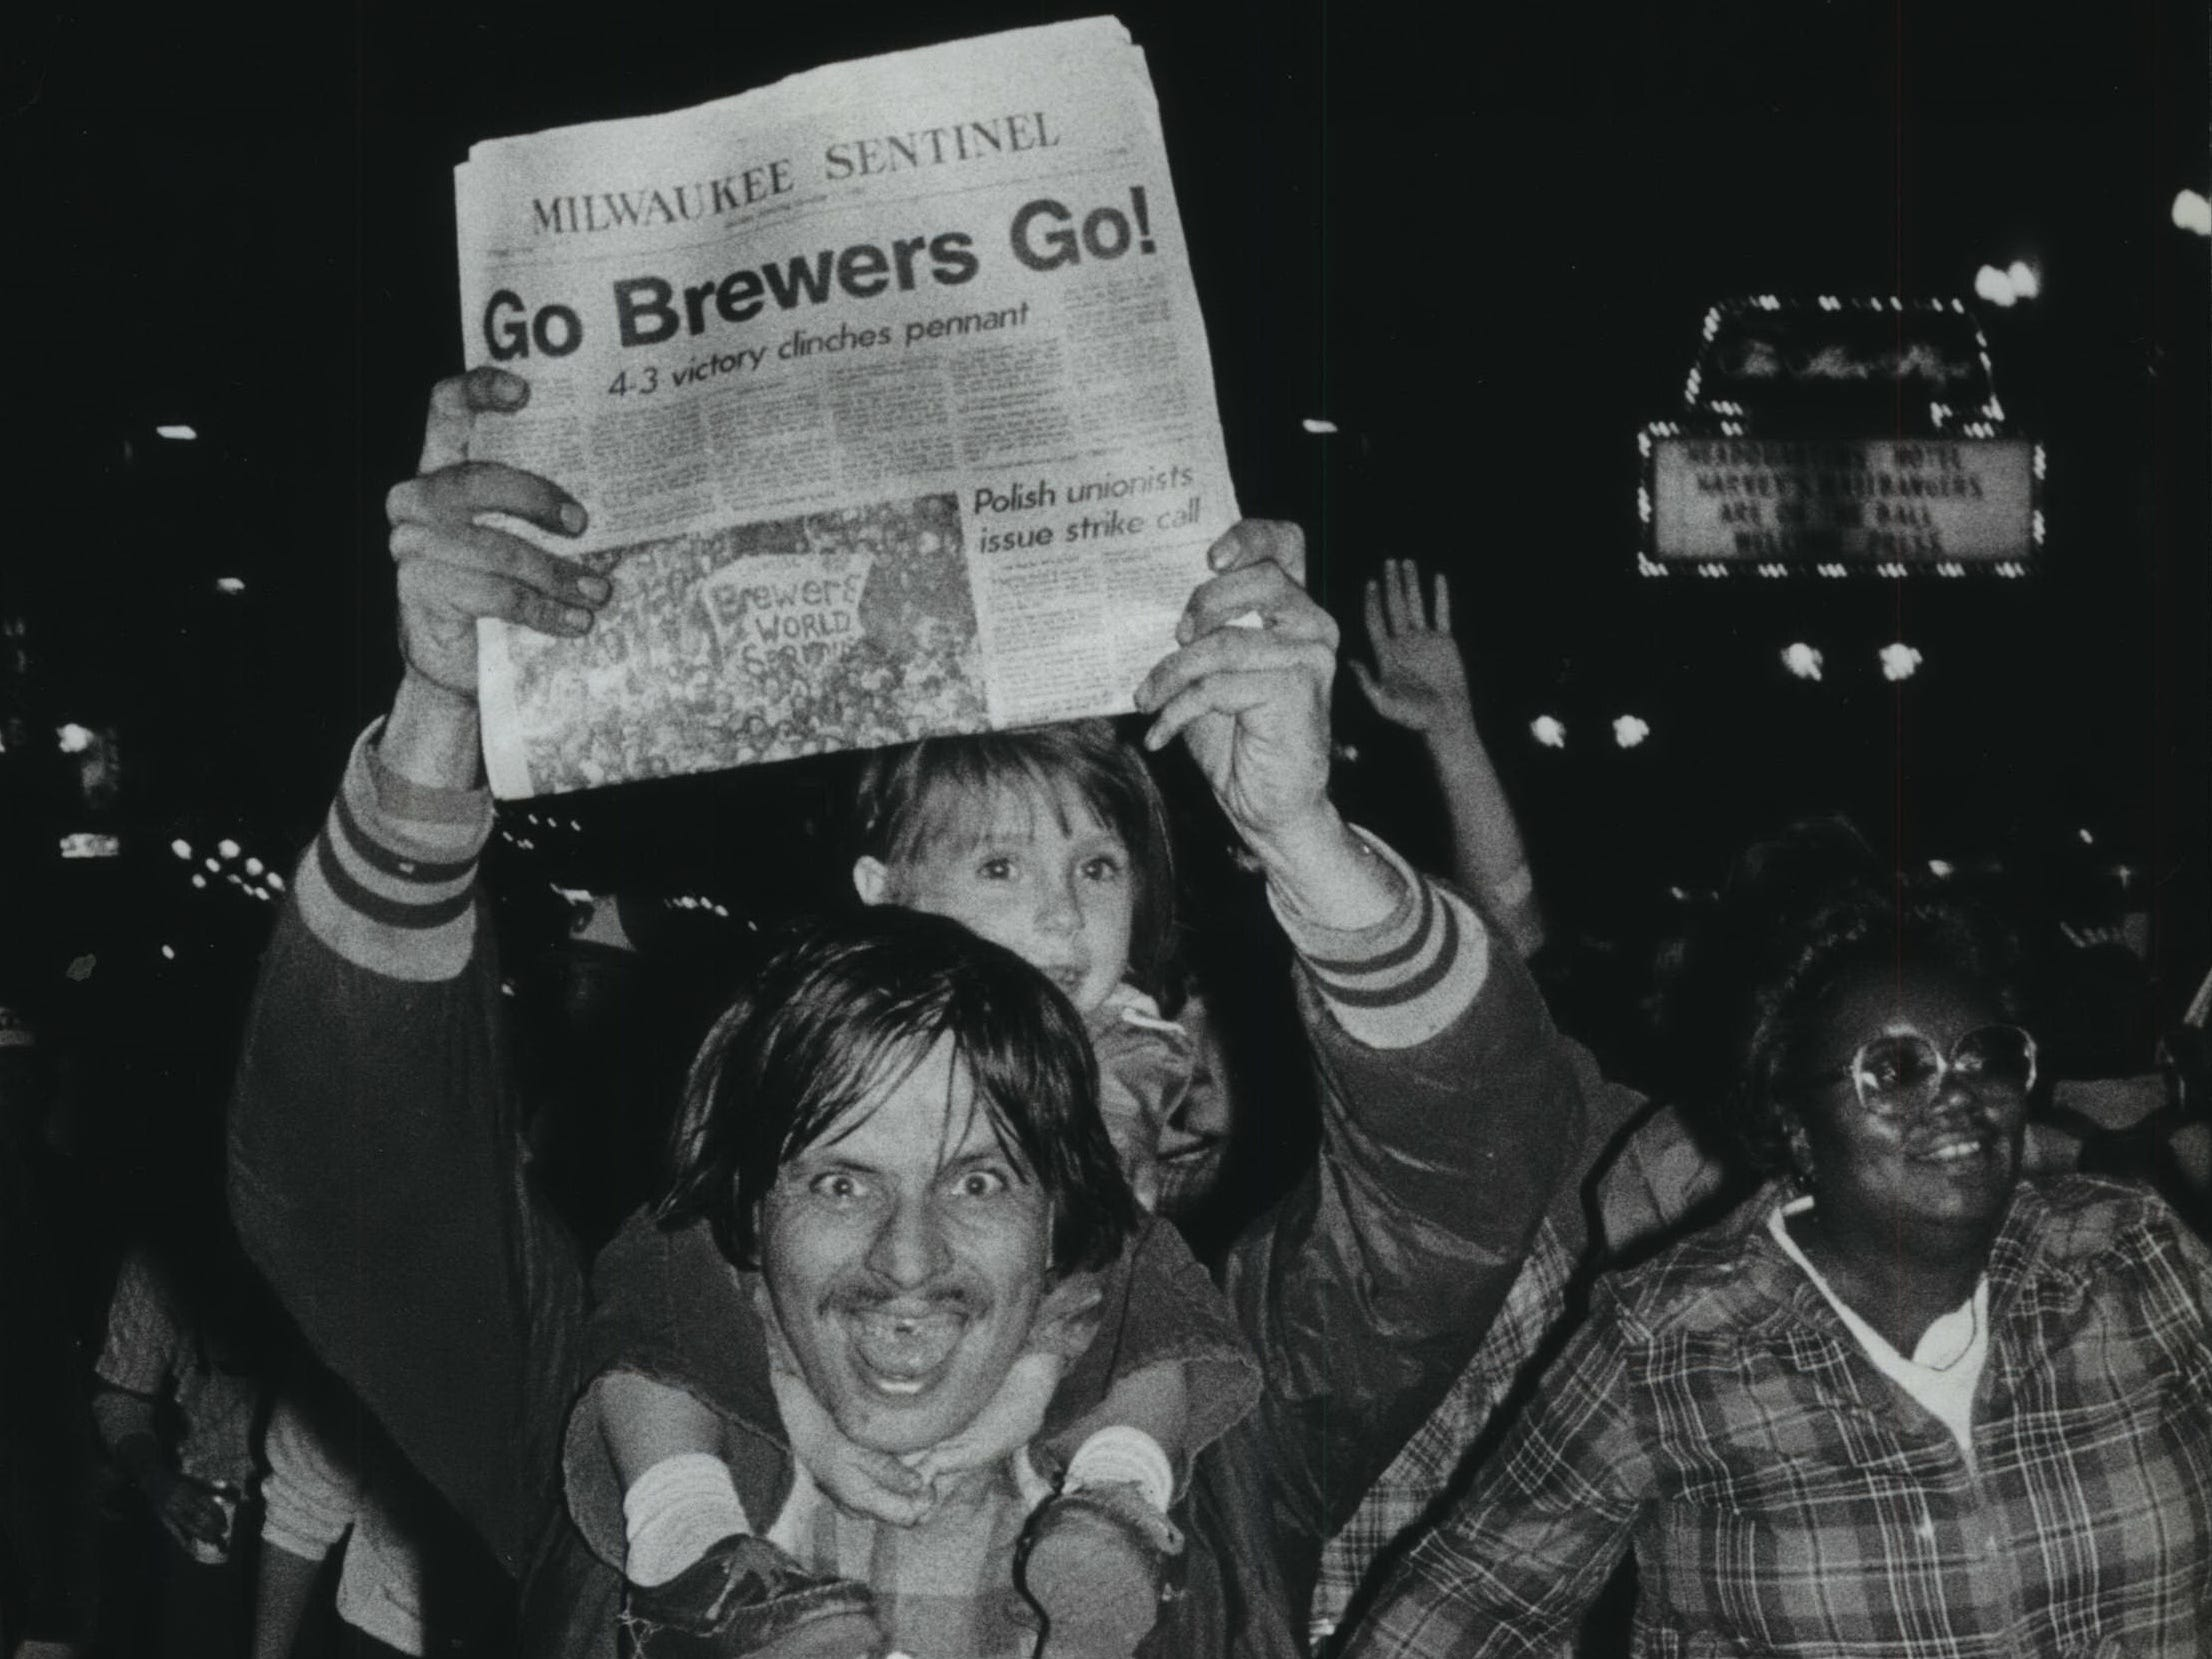 A fan joins the celebration on Wisconsin avenue after the Brewers won the American League pennant on Oct. 10, 1982. In addition to a child, he held aloft an early addition of the next morning's Milwaukee Sentinel.